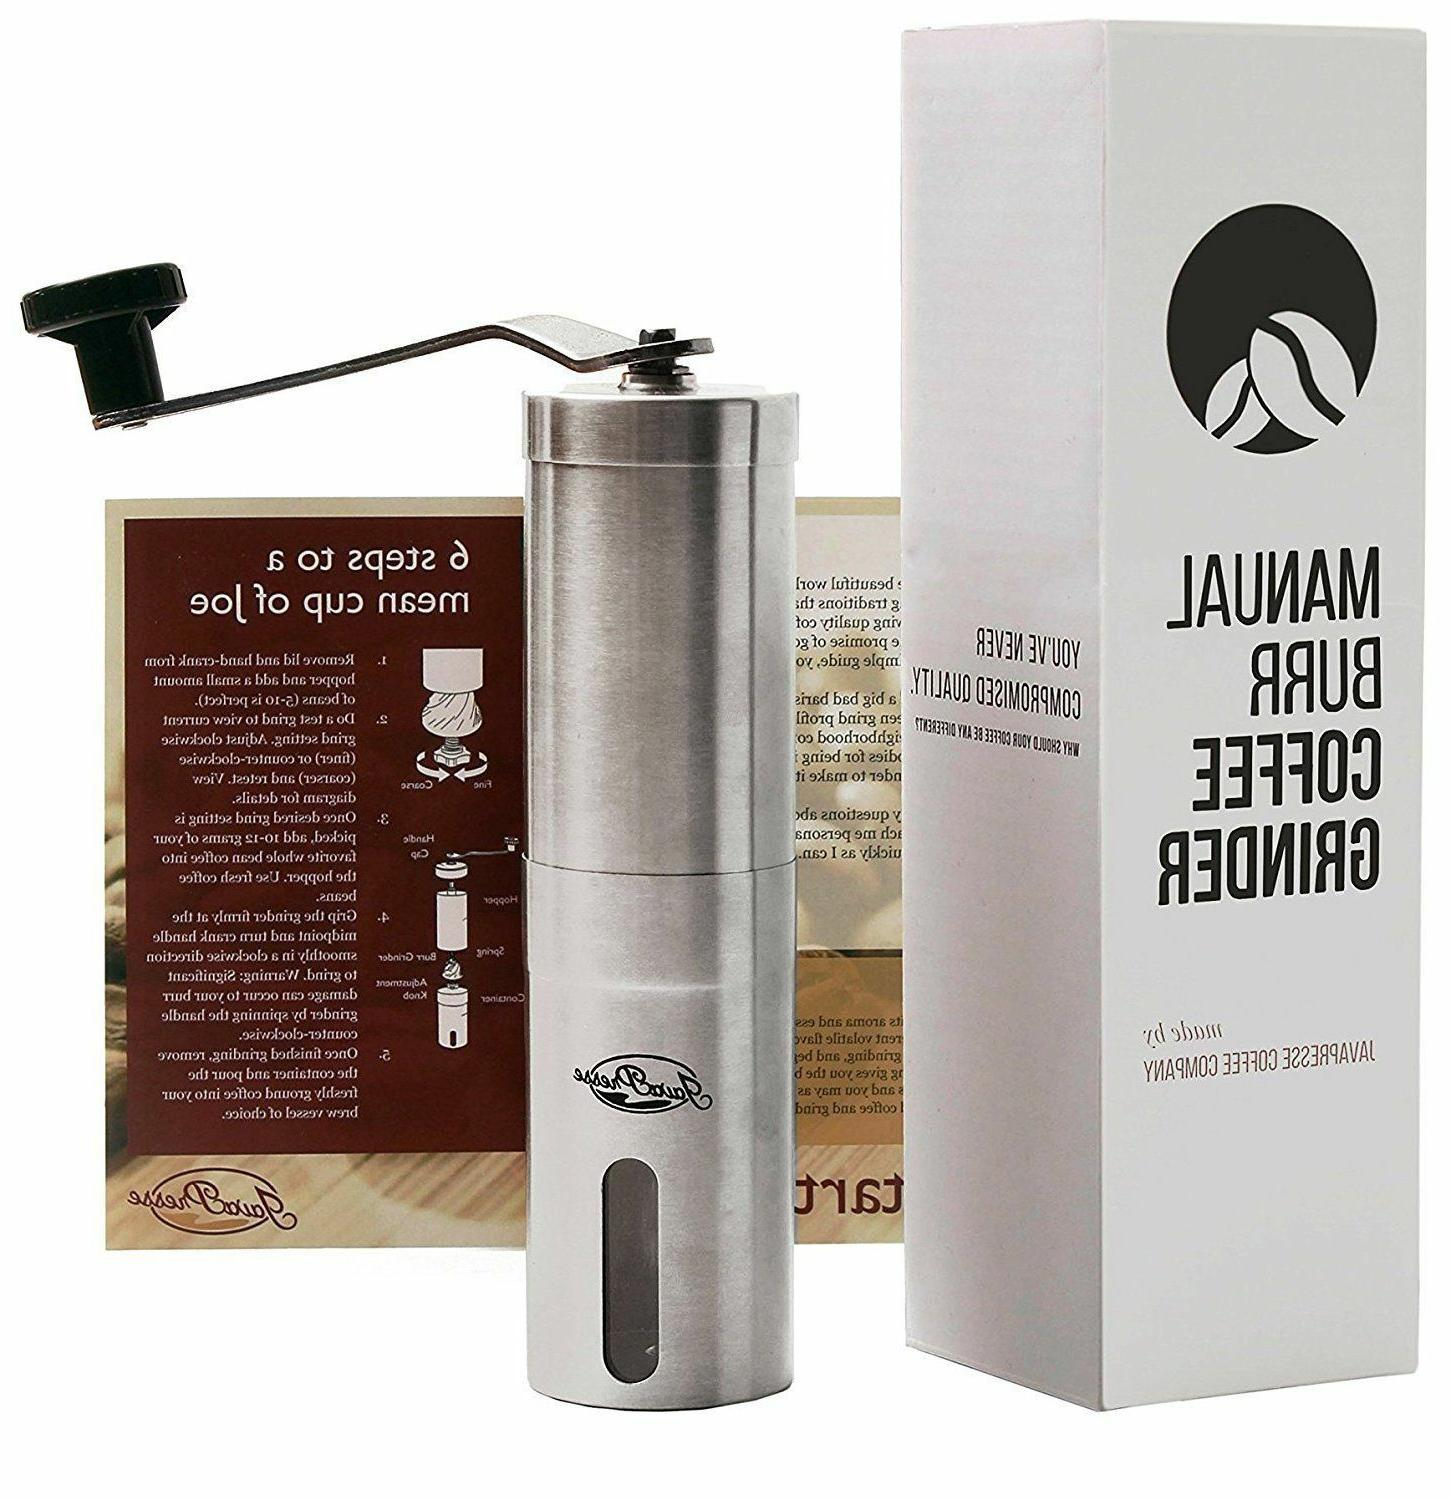 manual coffee grinder conical burr mill brushed